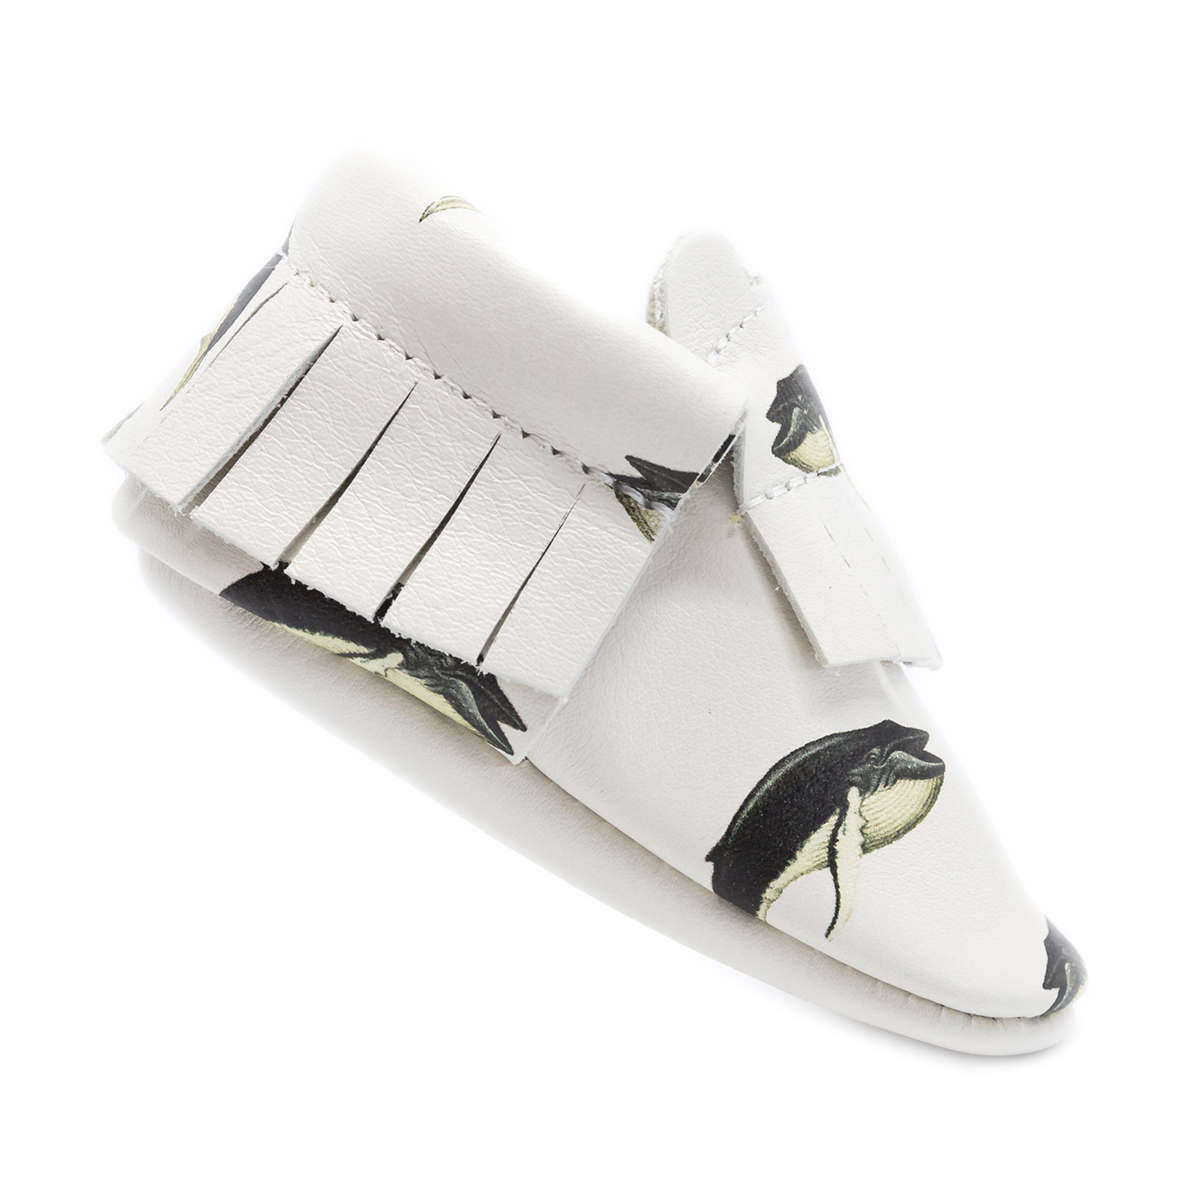 Chaussons & Chaussures Chaussons Megaptera - 20/21 Chaussons Megaptera - 20/21